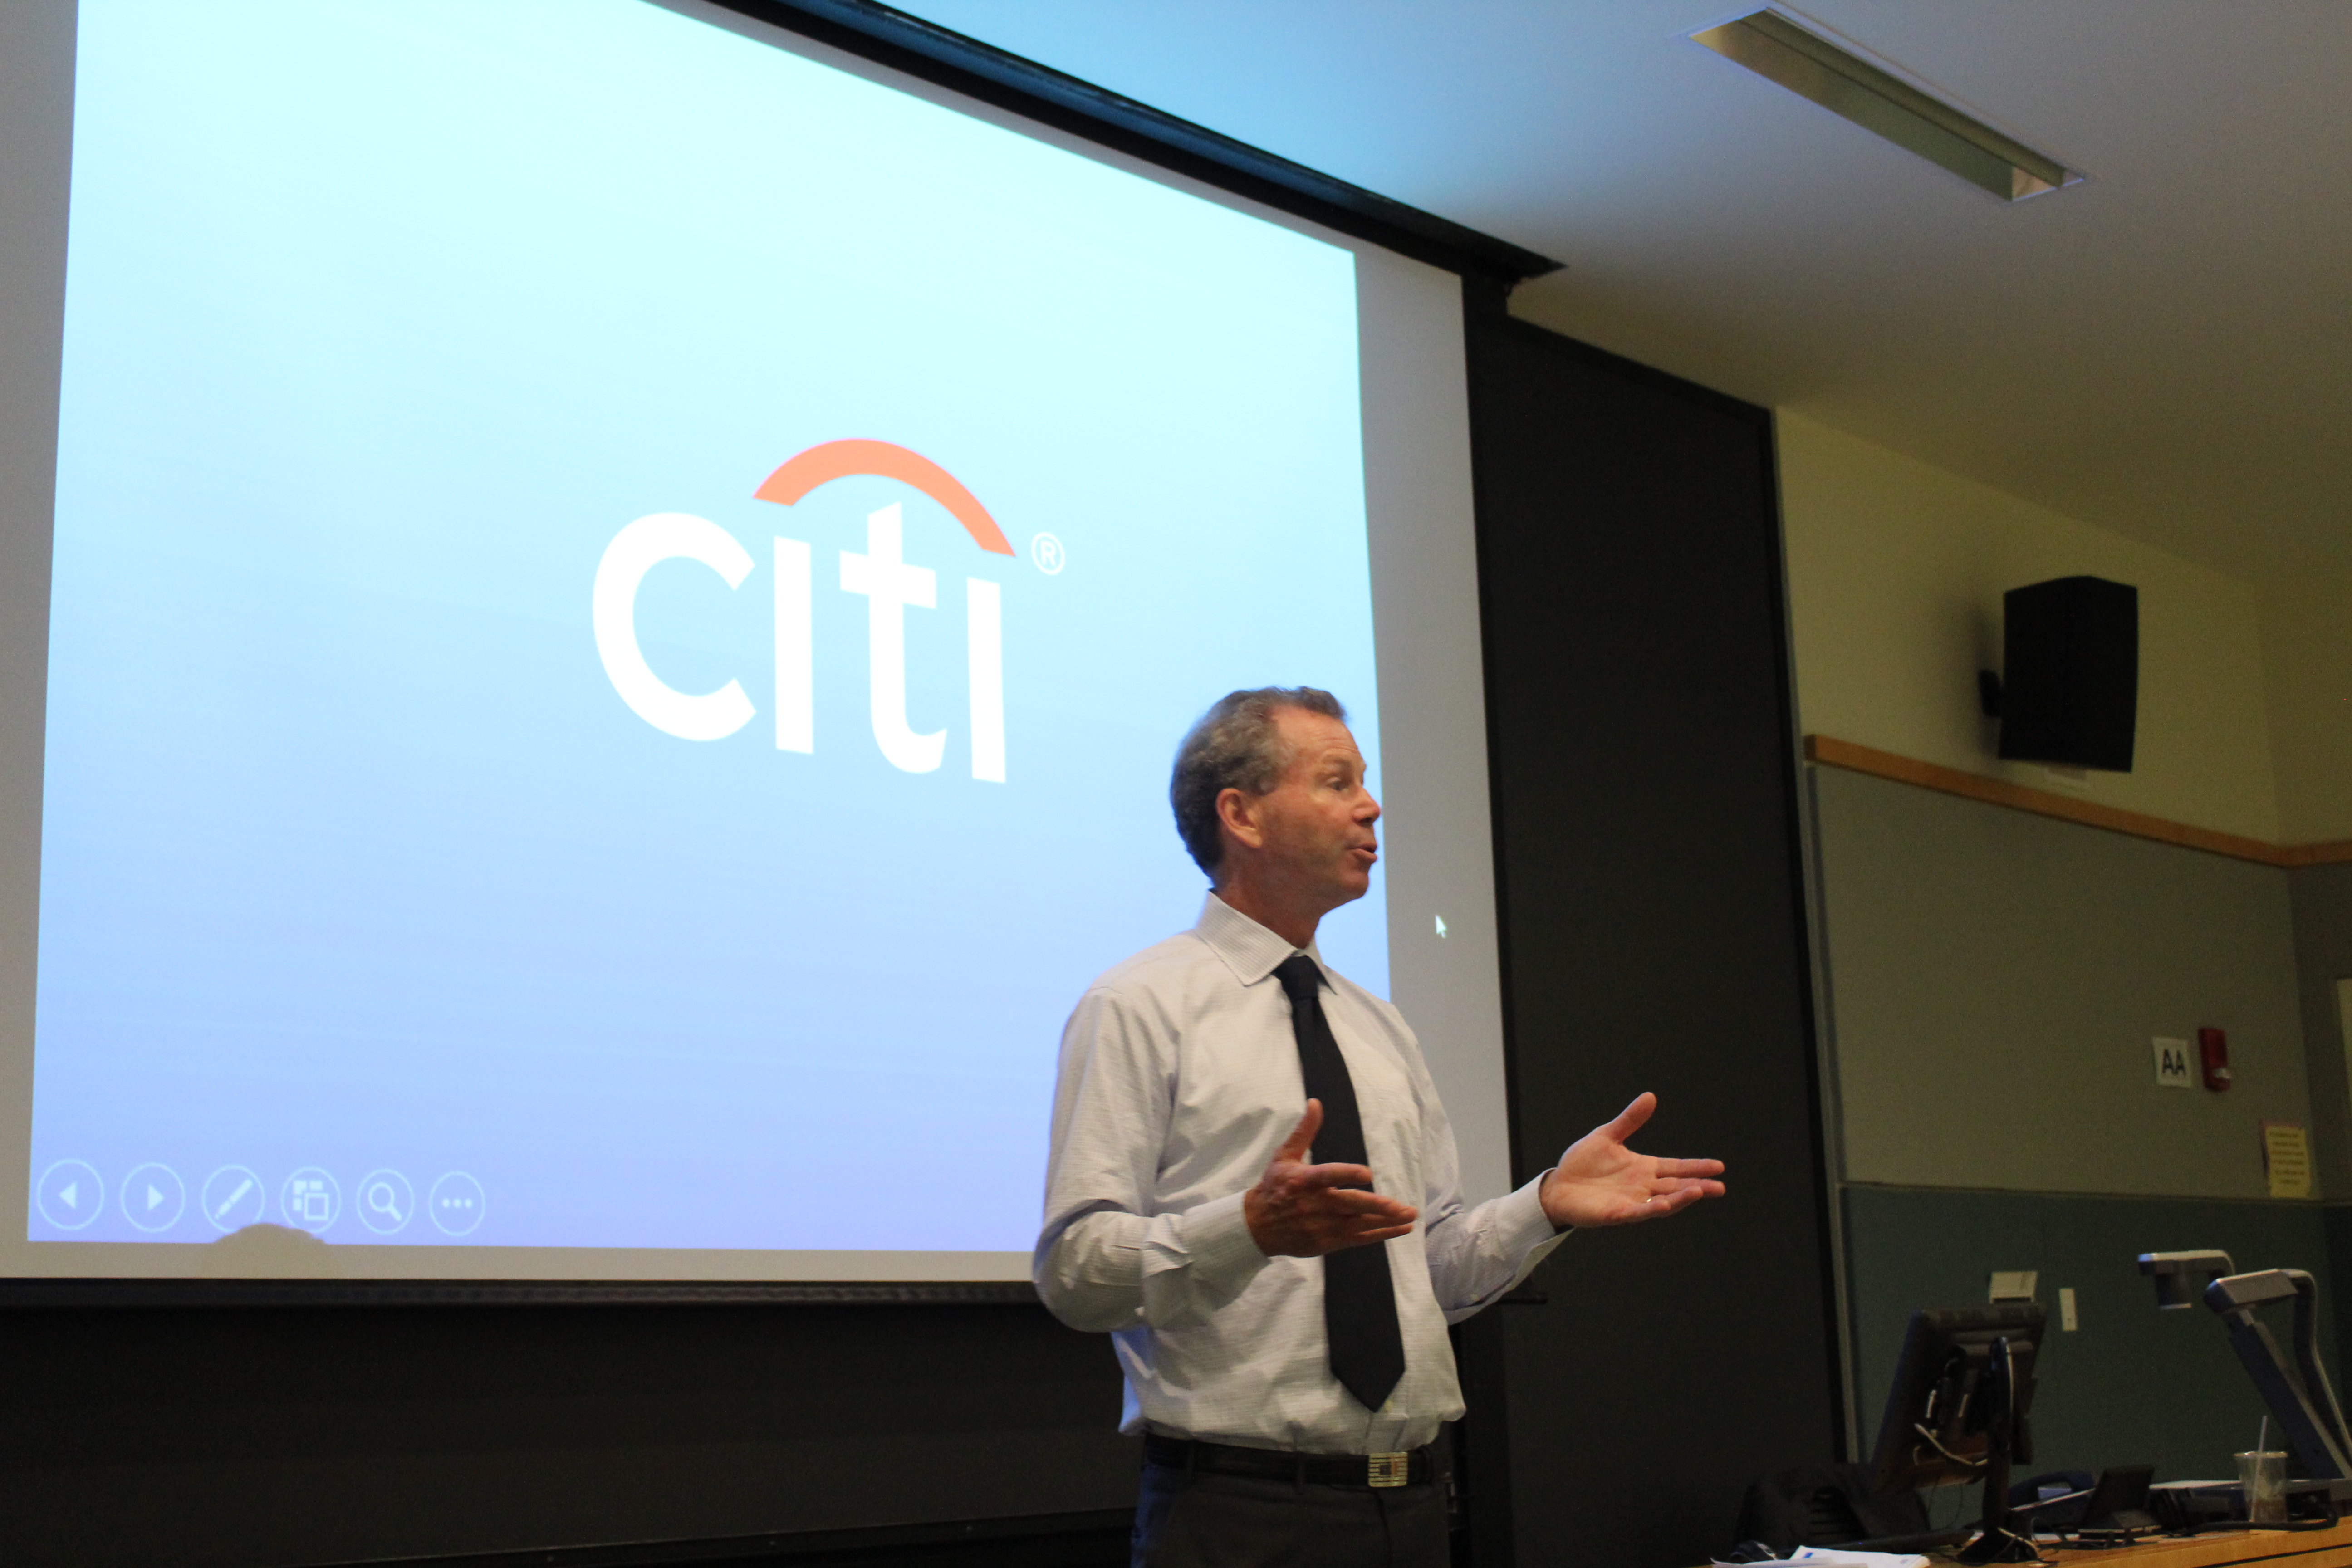 Shapleigh Smith of Citigroup speaking to the members of the Finance Society.